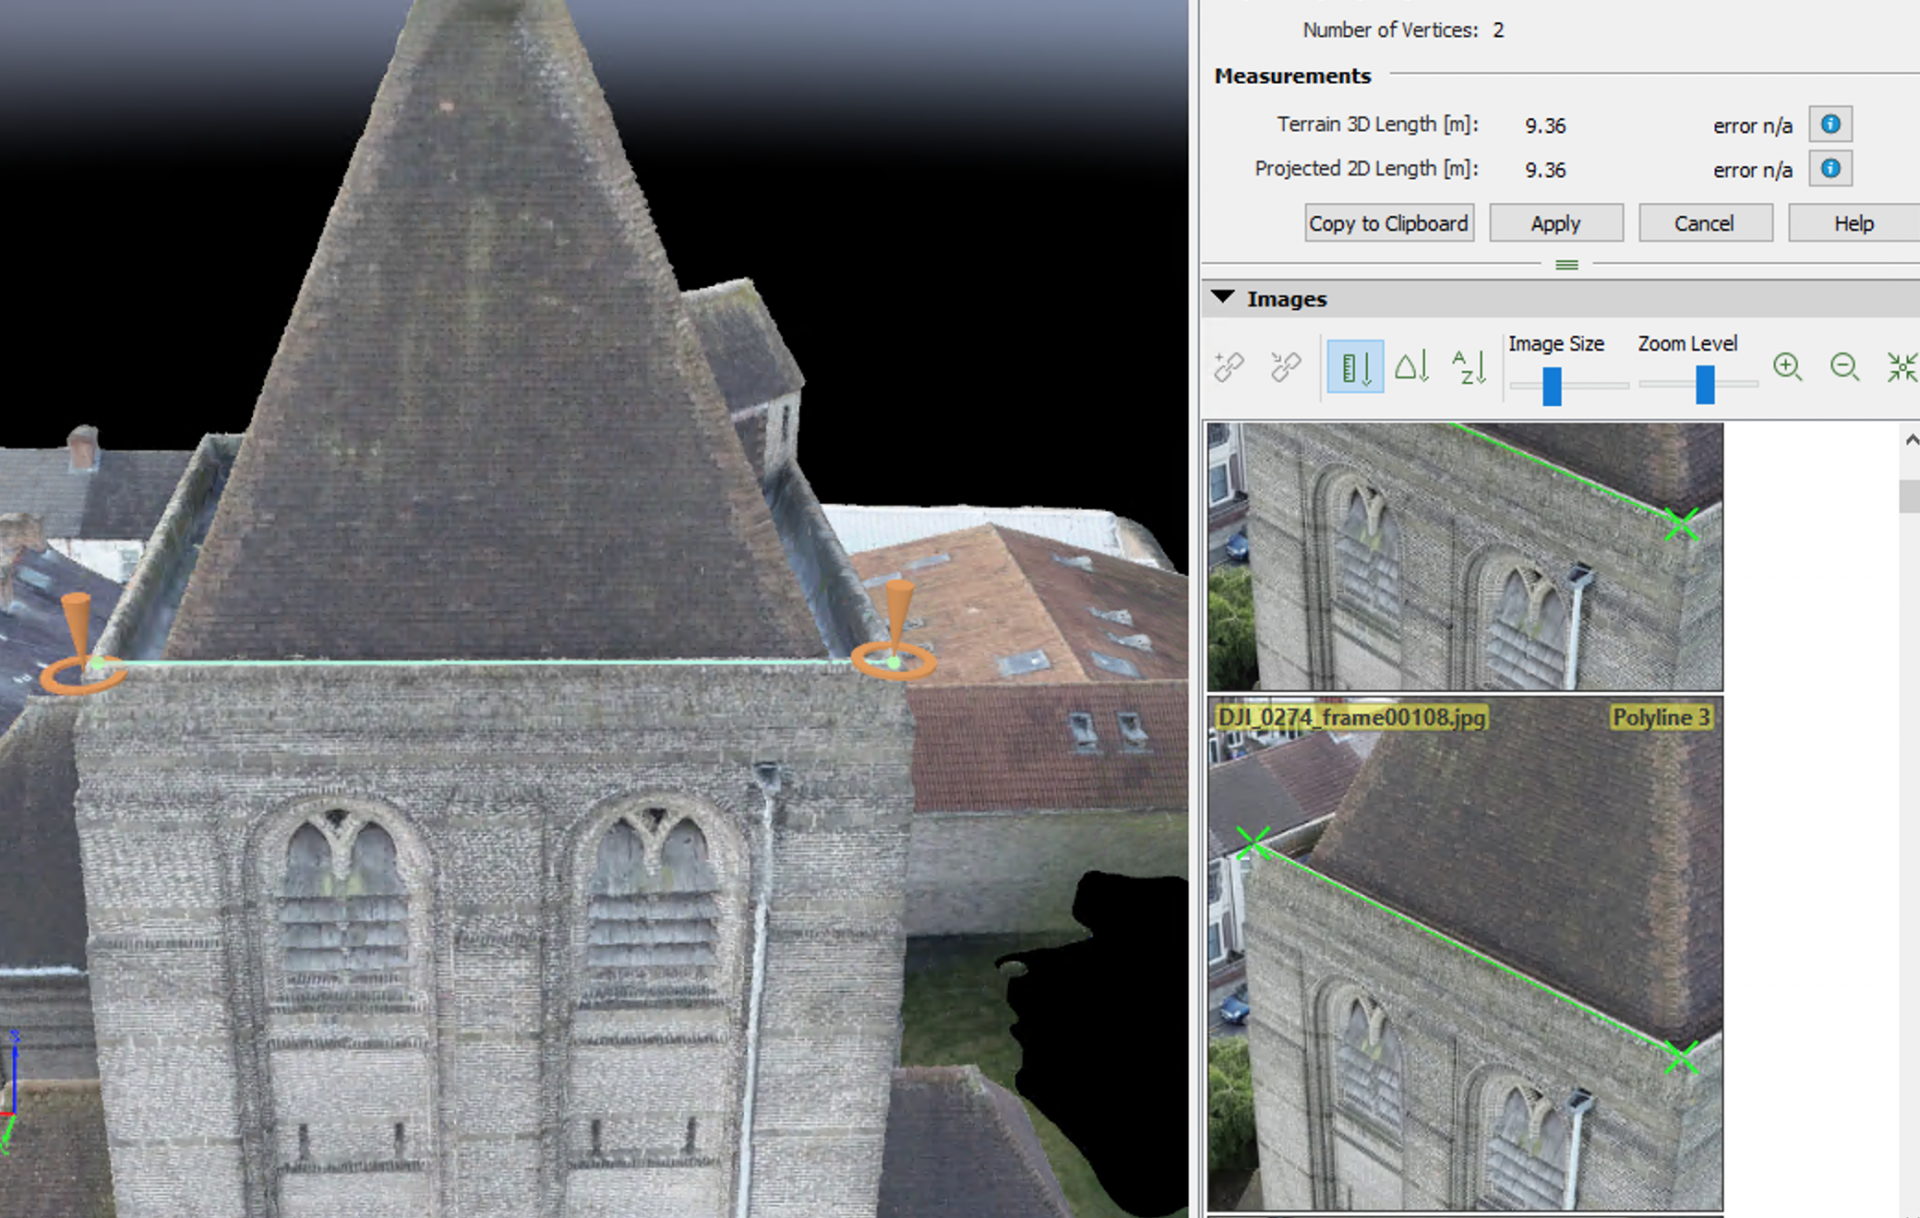 Photogrammetry for measuring purposes